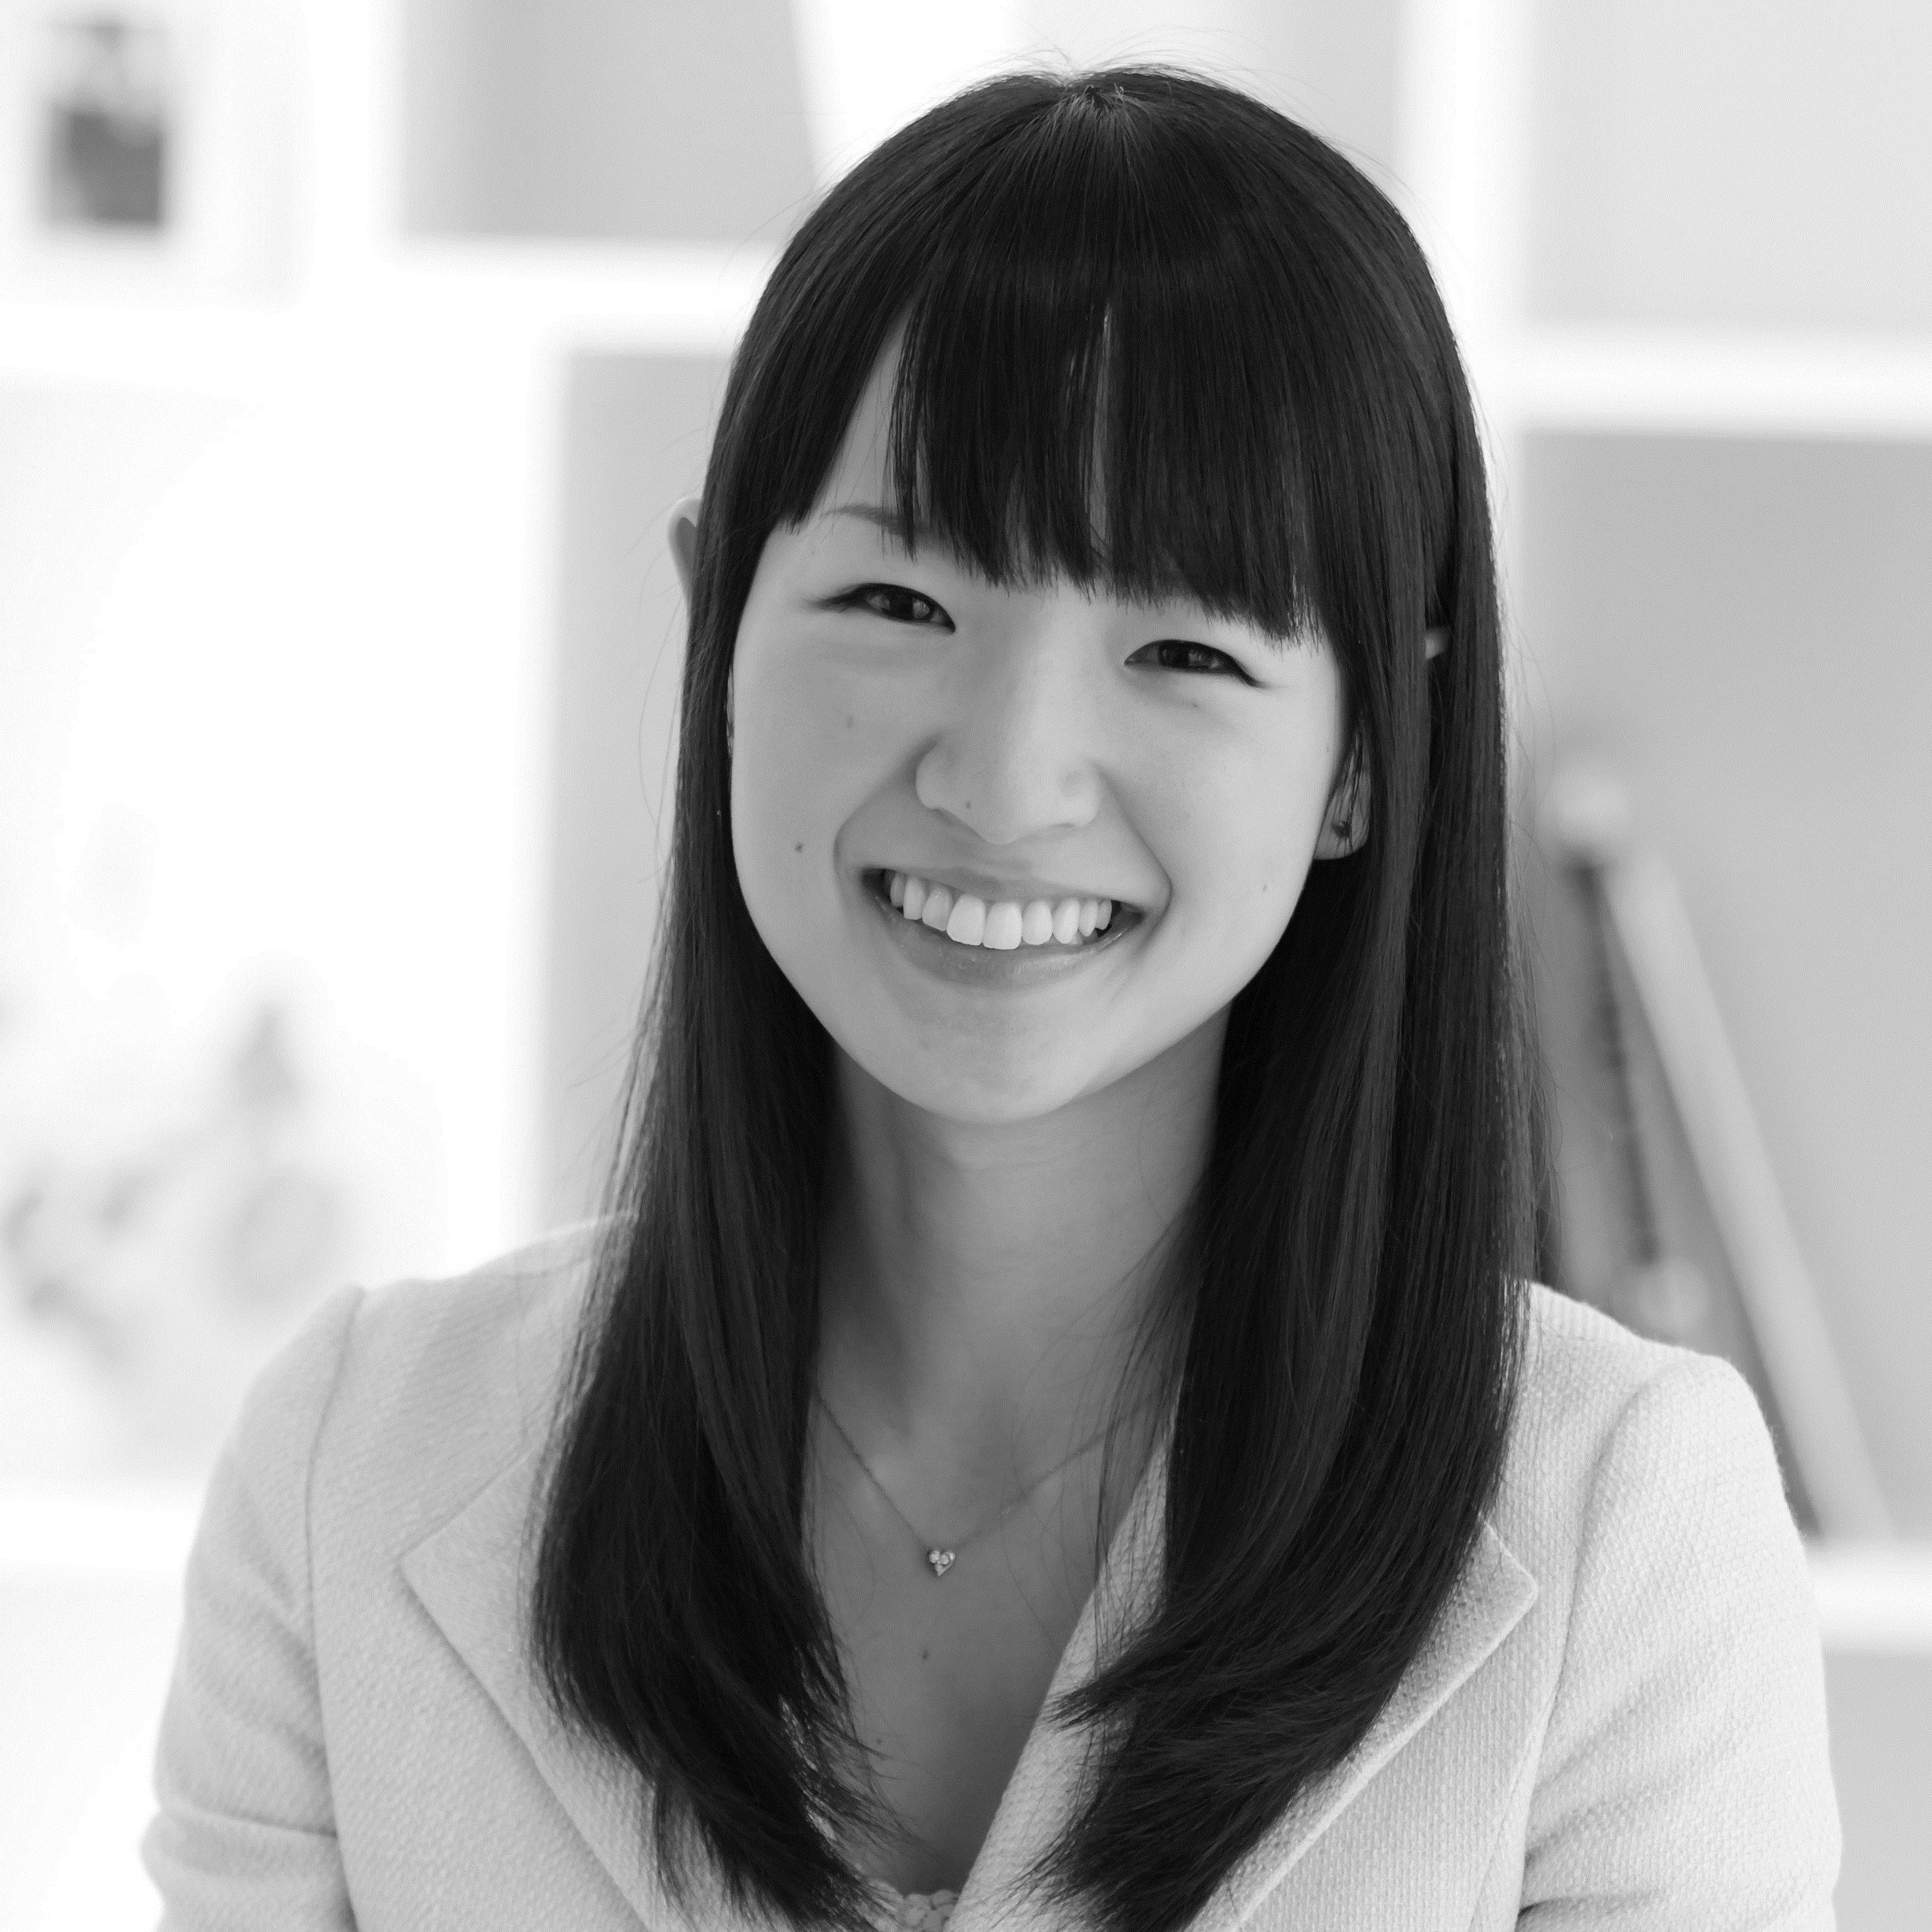 marie kondo s suitecase packing masterclass. Black Bedroom Furniture Sets. Home Design Ideas